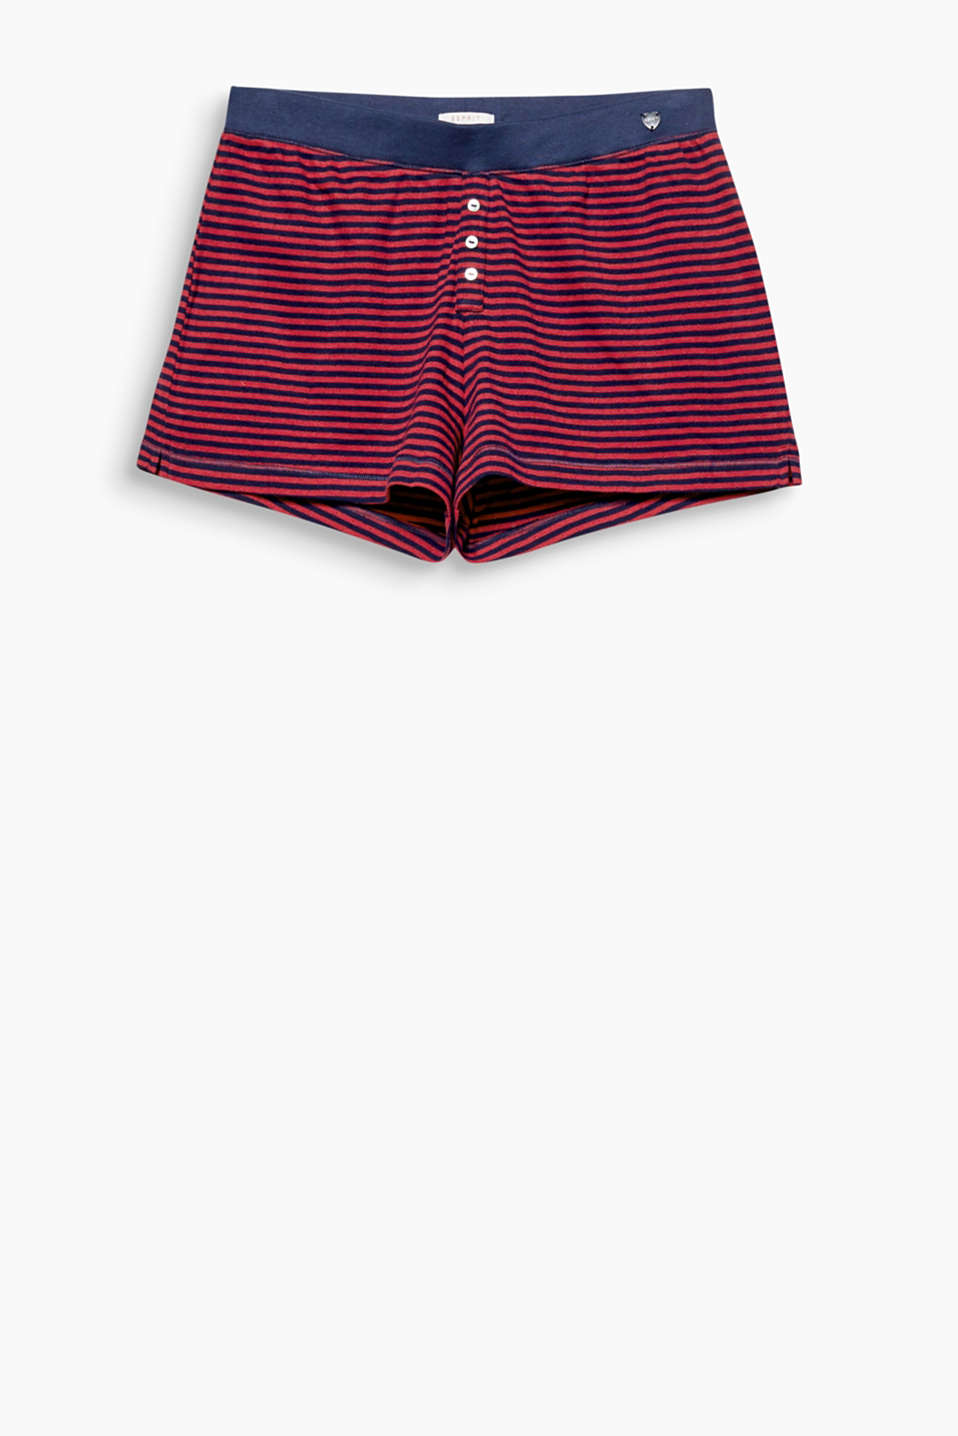 Soft, striped jersey shorts with an open-work pattern, 100% cotton